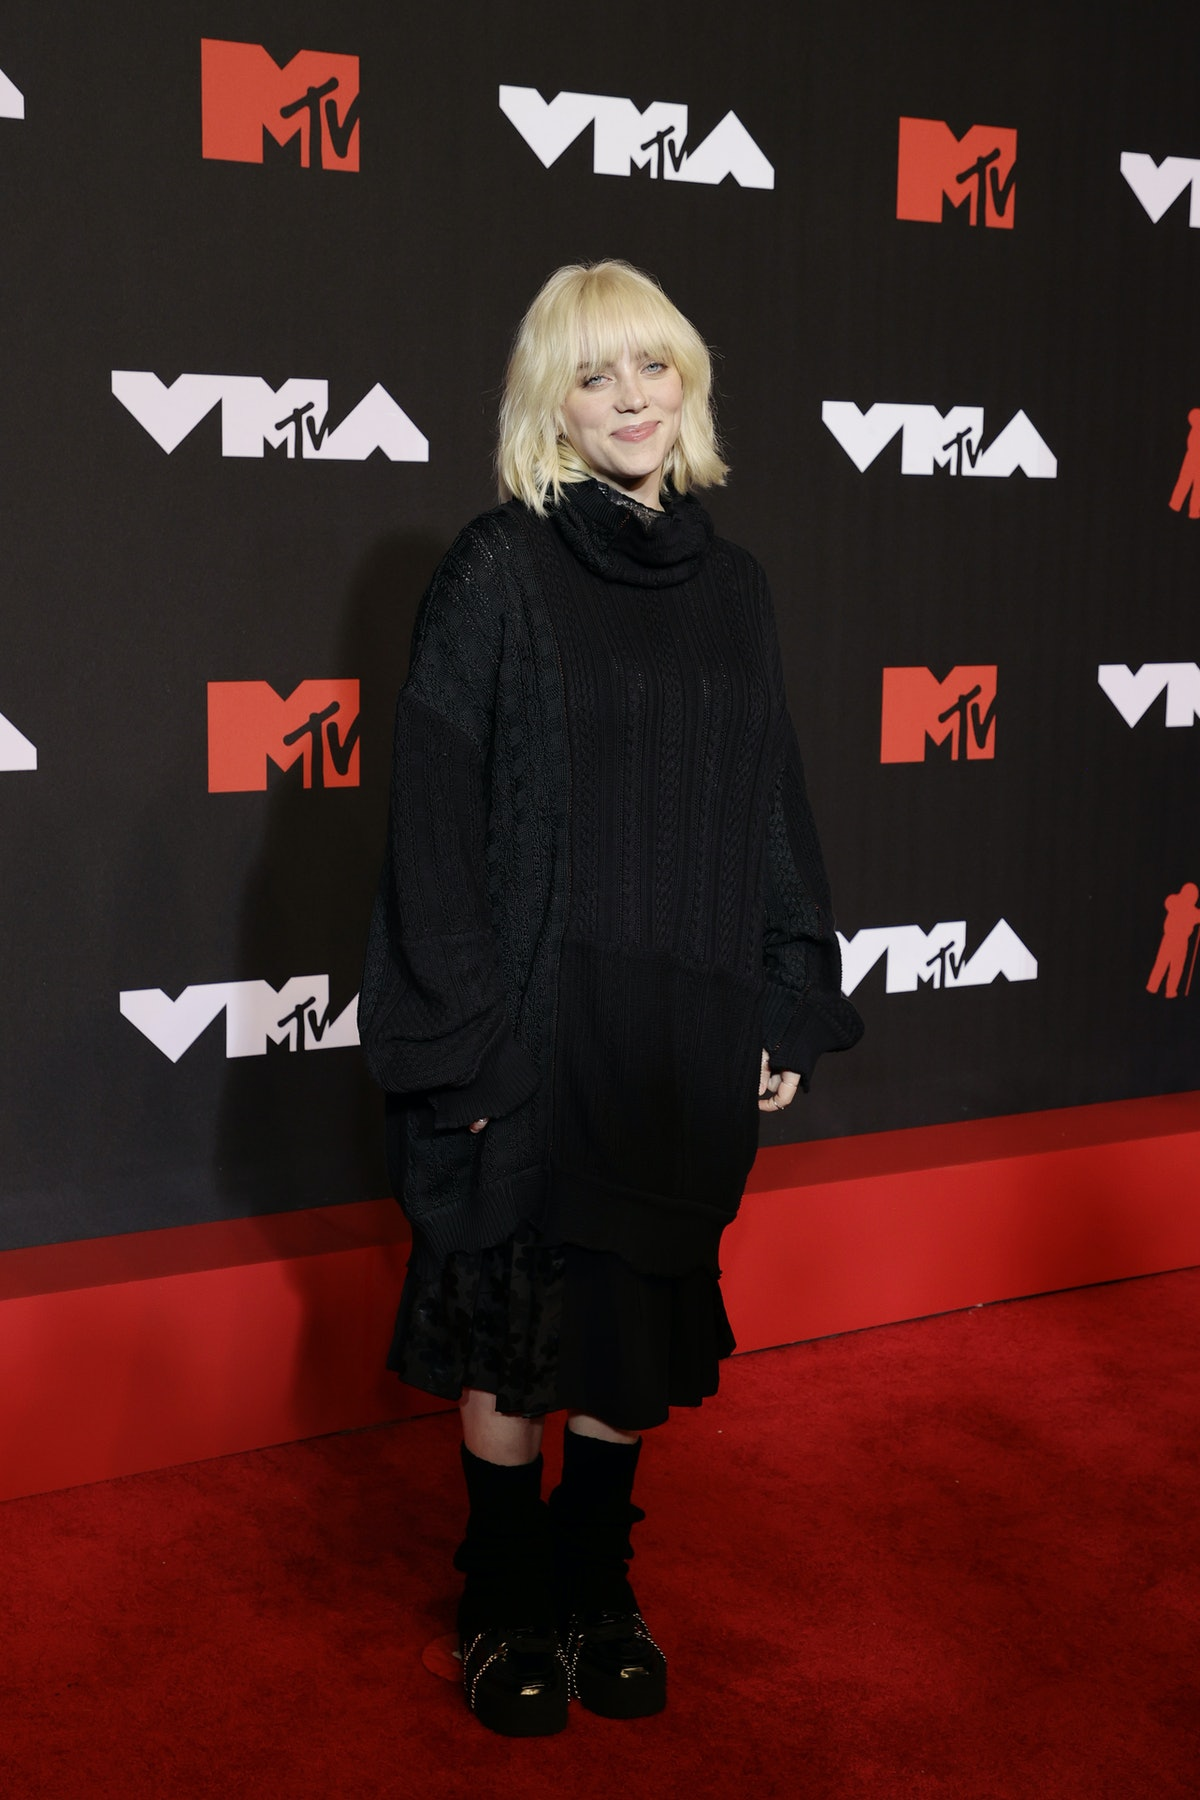 Billie Eilish attends the 2021 MTV Video Music Awards at Barclays Center on September 12, 2021 in th...